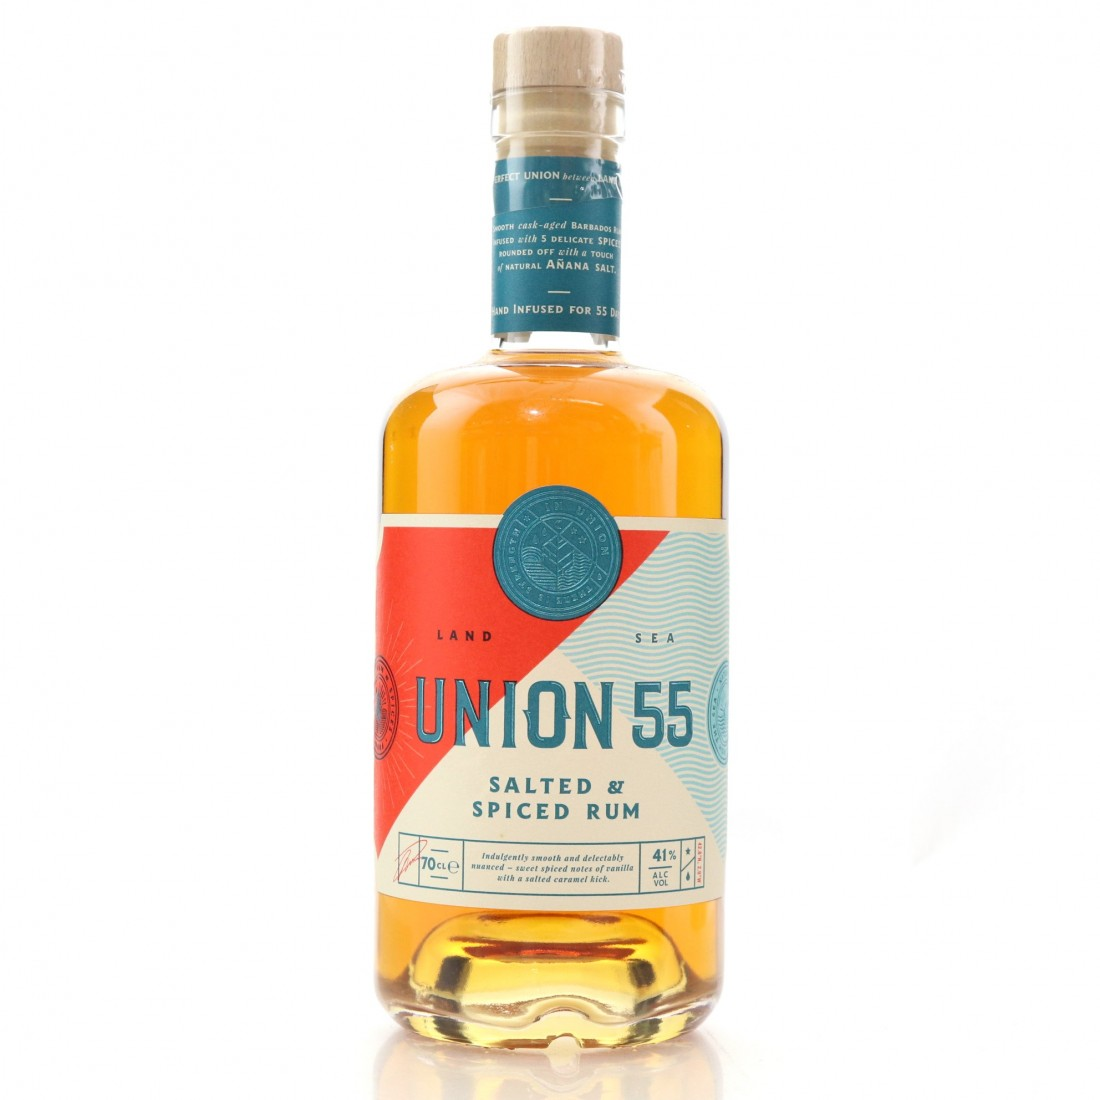 Union 55 5 Year Old Salted and Spiced Rum